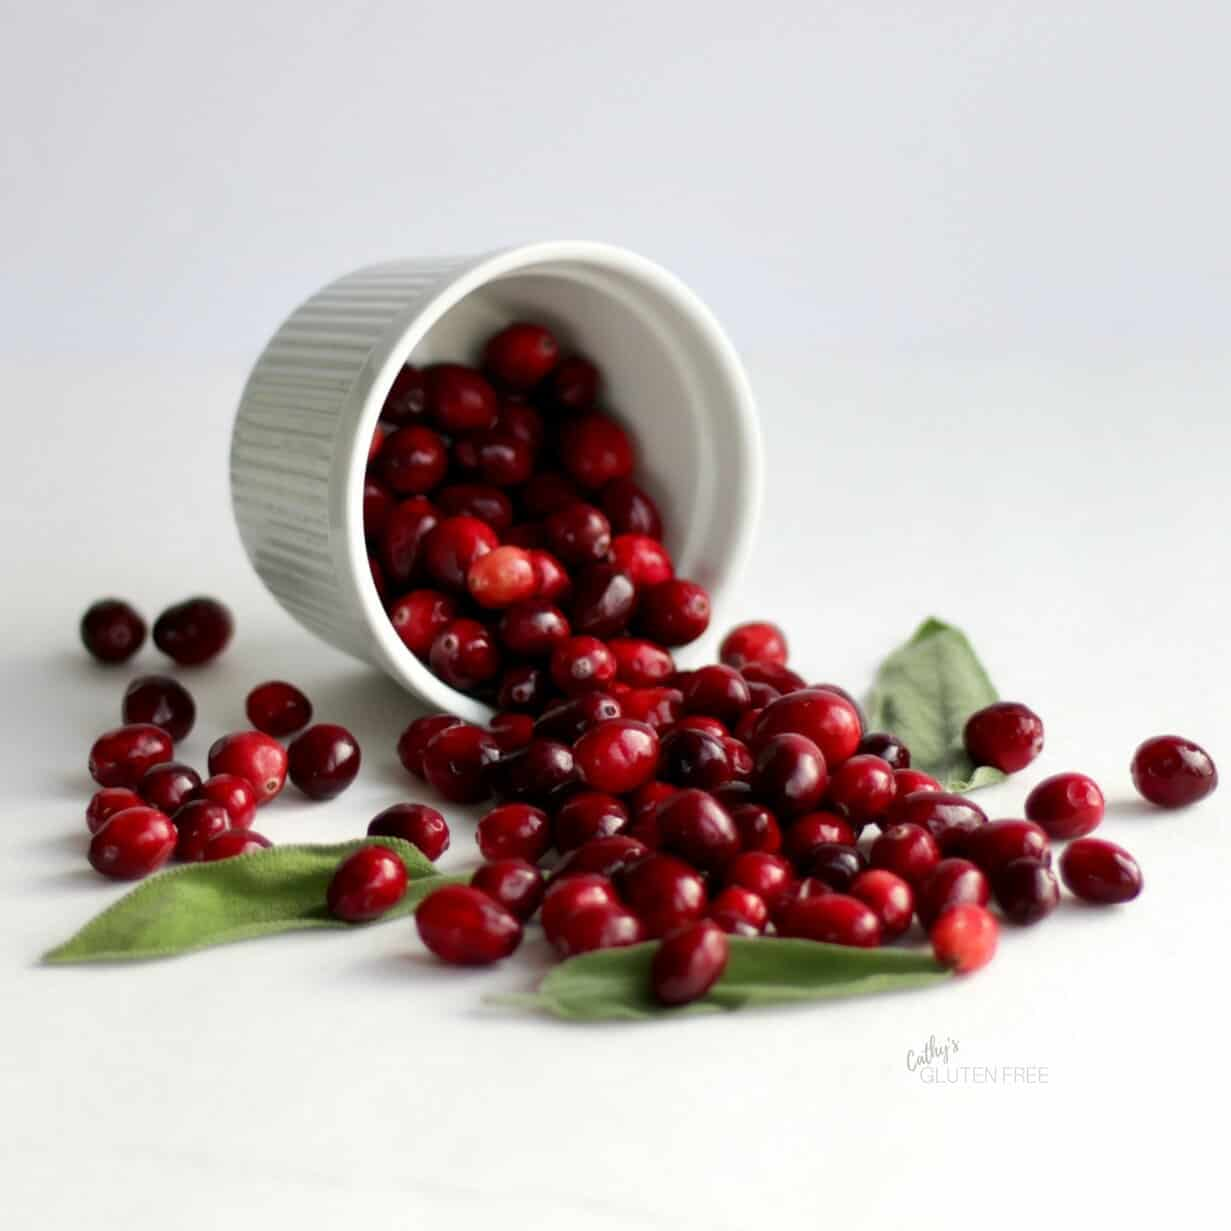 Fresh cranberries spilling from a ramekin - CathysGlutenFree.com